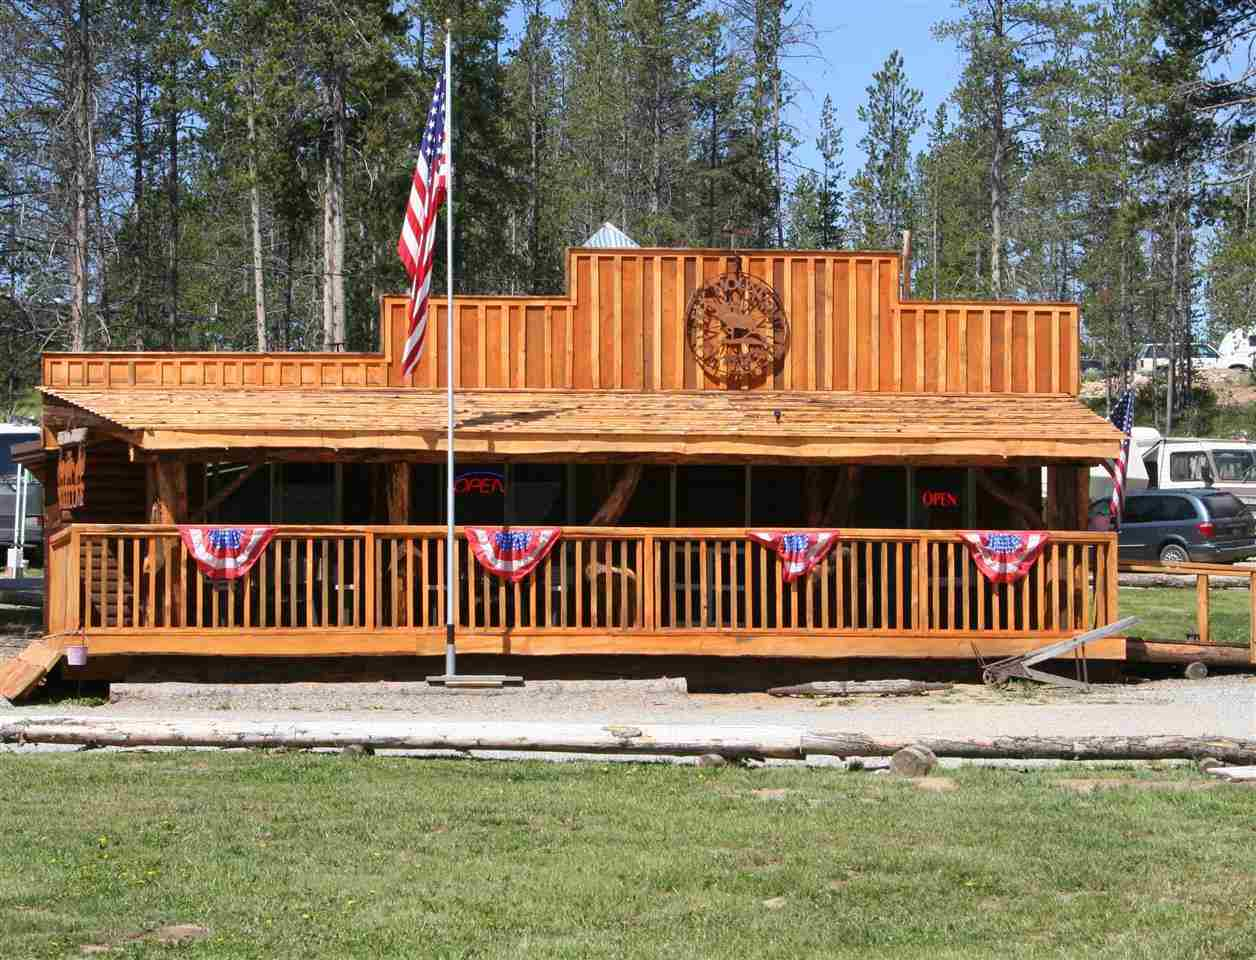 Business Opportunity for Sale at 12655 Hwy 21 12655 Hwy 21 Stanley, Idaho 83278